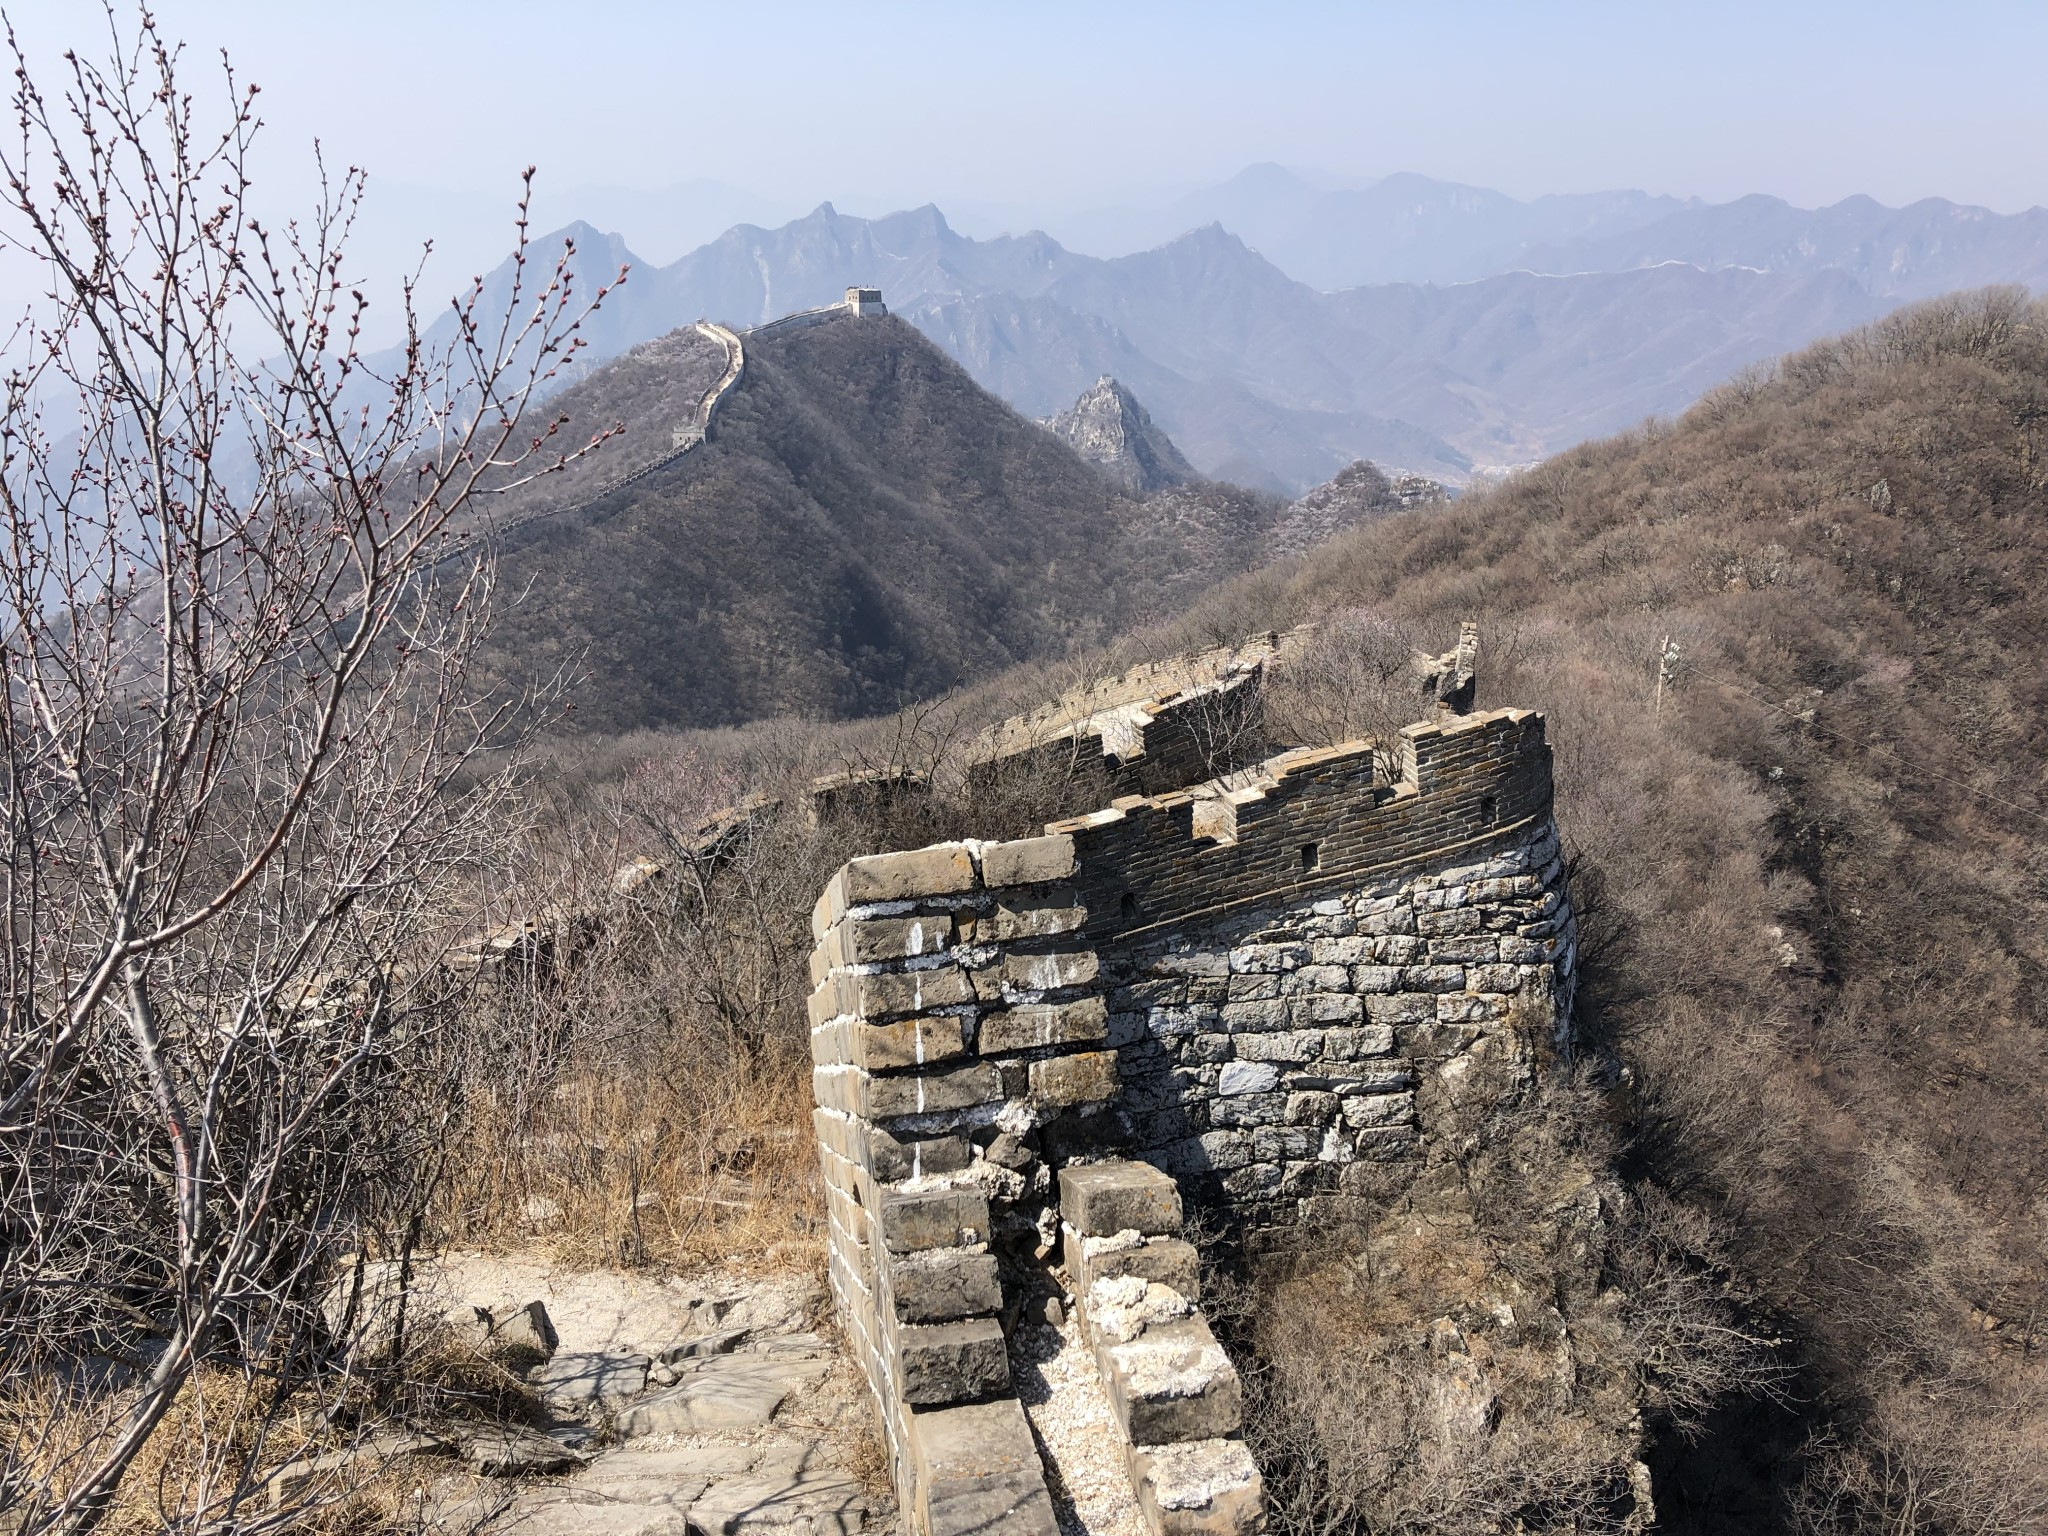 Best Mutianyu Great Wall Tour: How to get to the Great Wall of China from Beijing